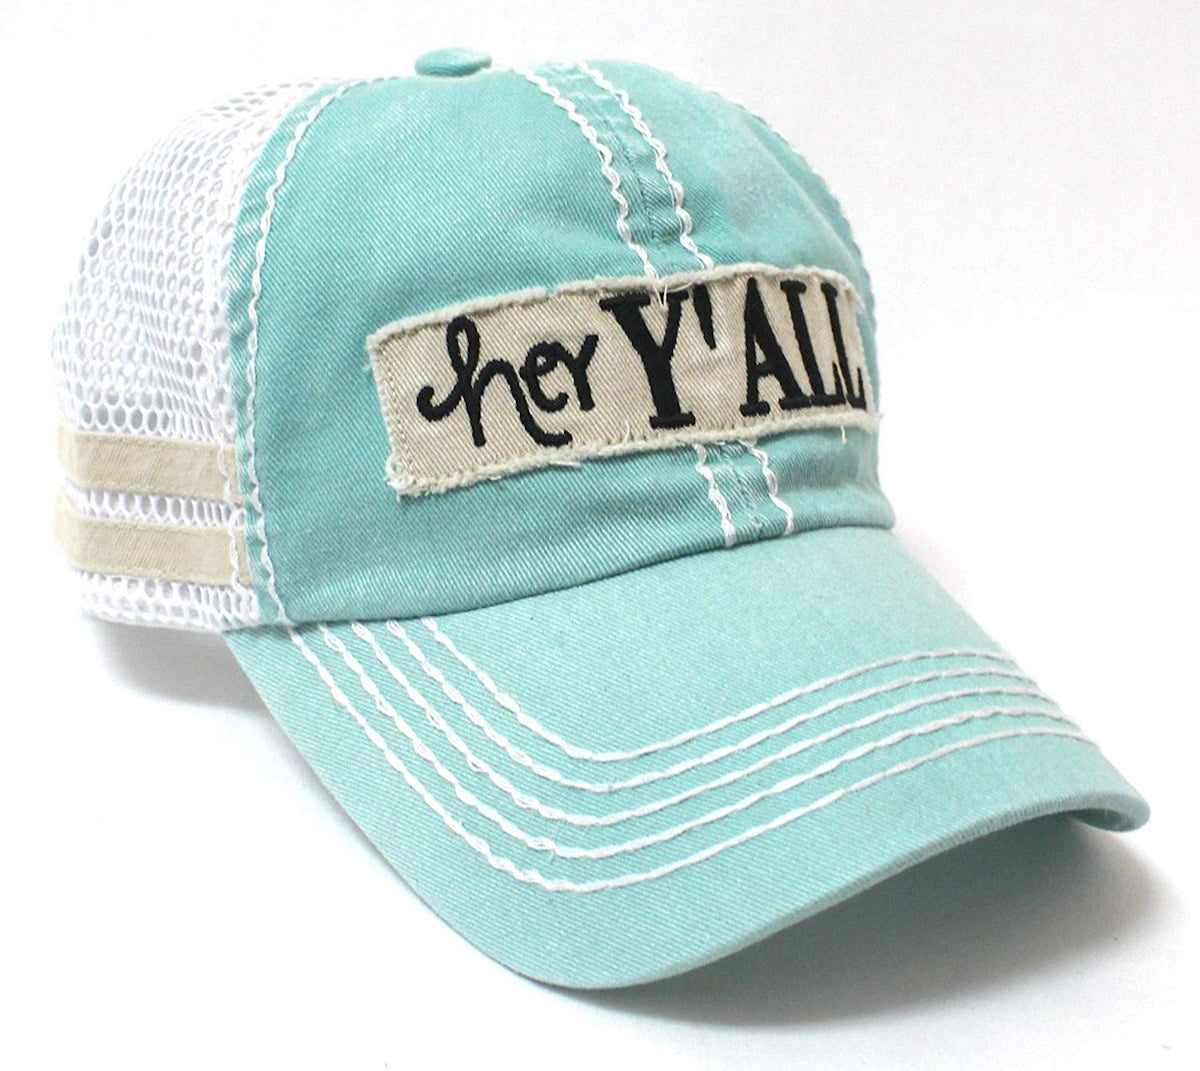 CAPS 'N VINTAGE Fiji Mint Blue Hey Y'all Trucker Hat - Caps 'N Vintage